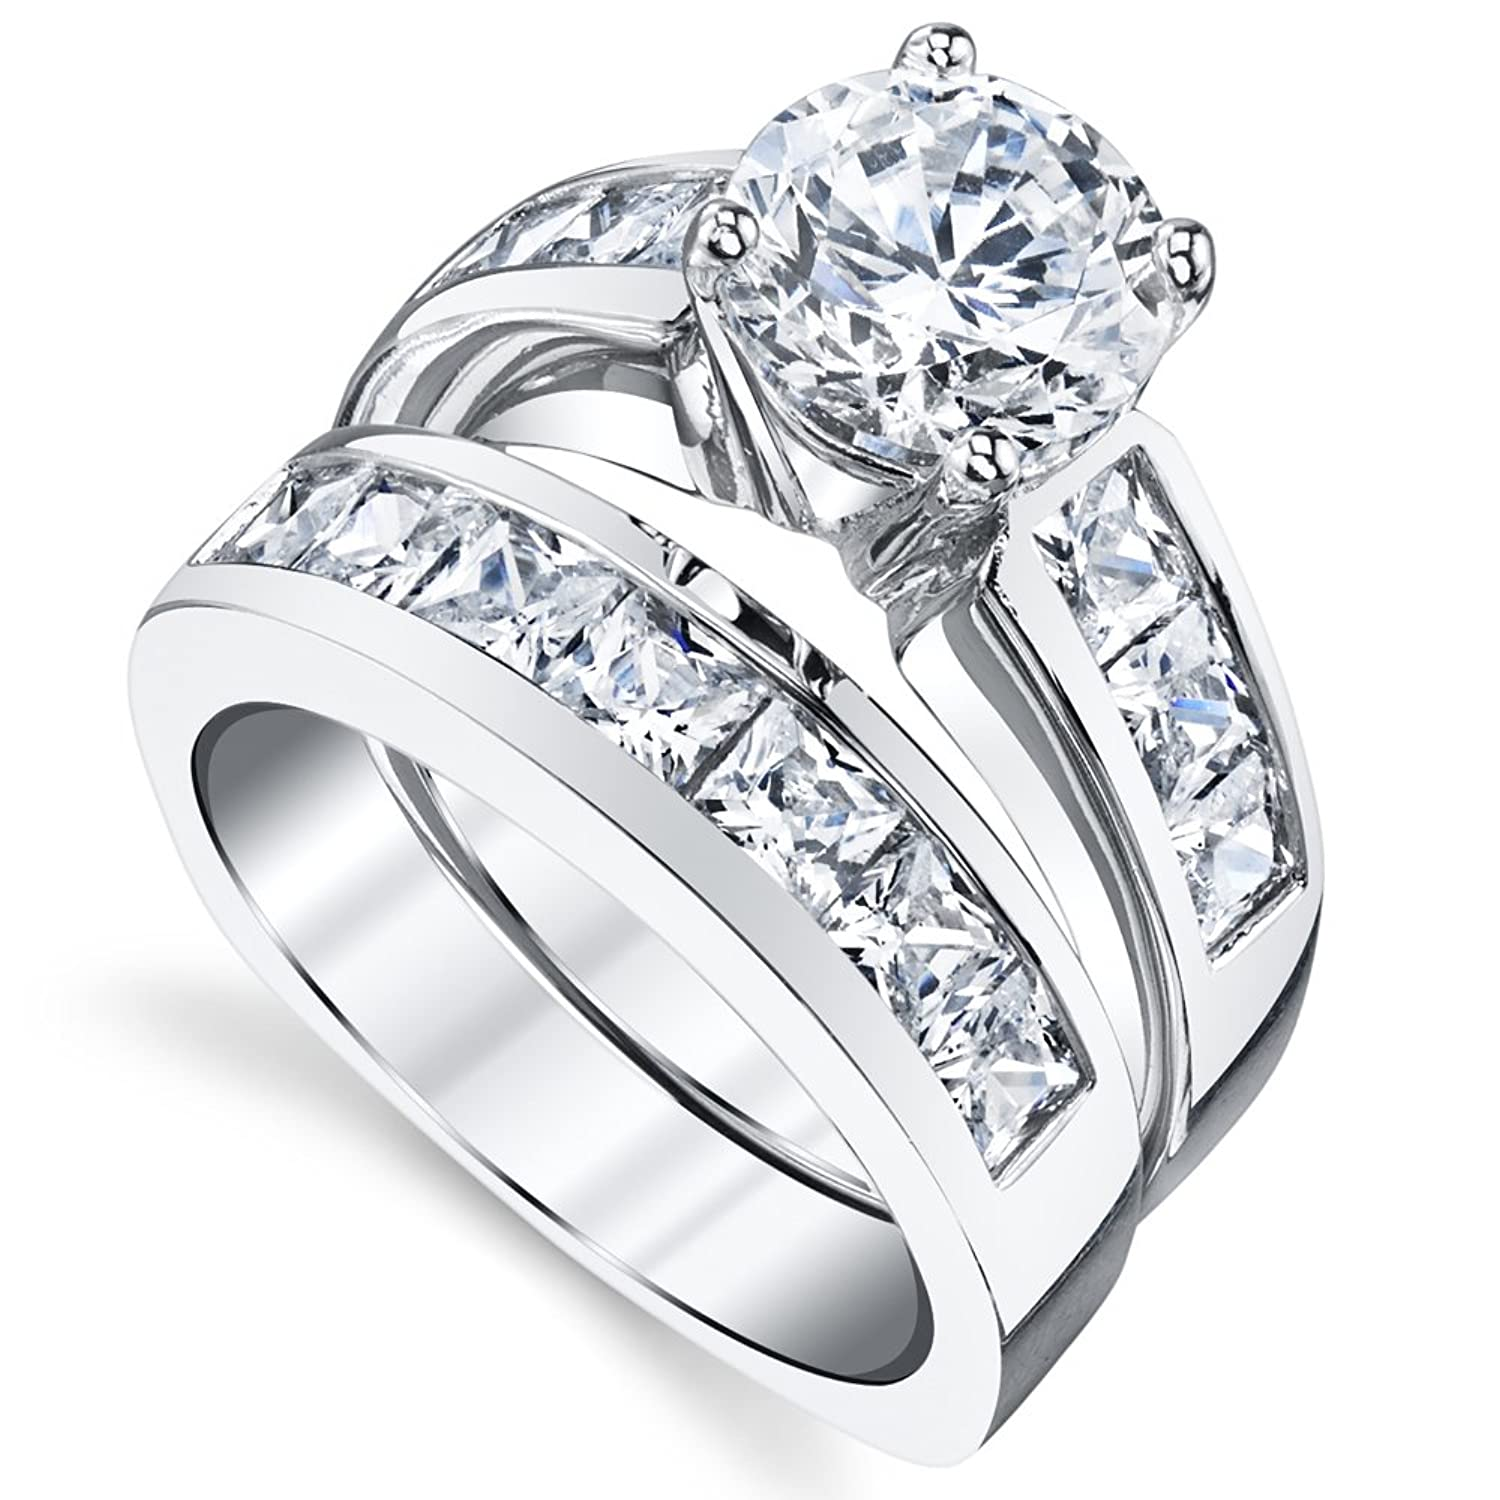 Amazon.com: Sterling Silver Bridal Set Engagement Wedding Ring Bands With  Round And Princess Cut Cubic Zirconia: Jewelry